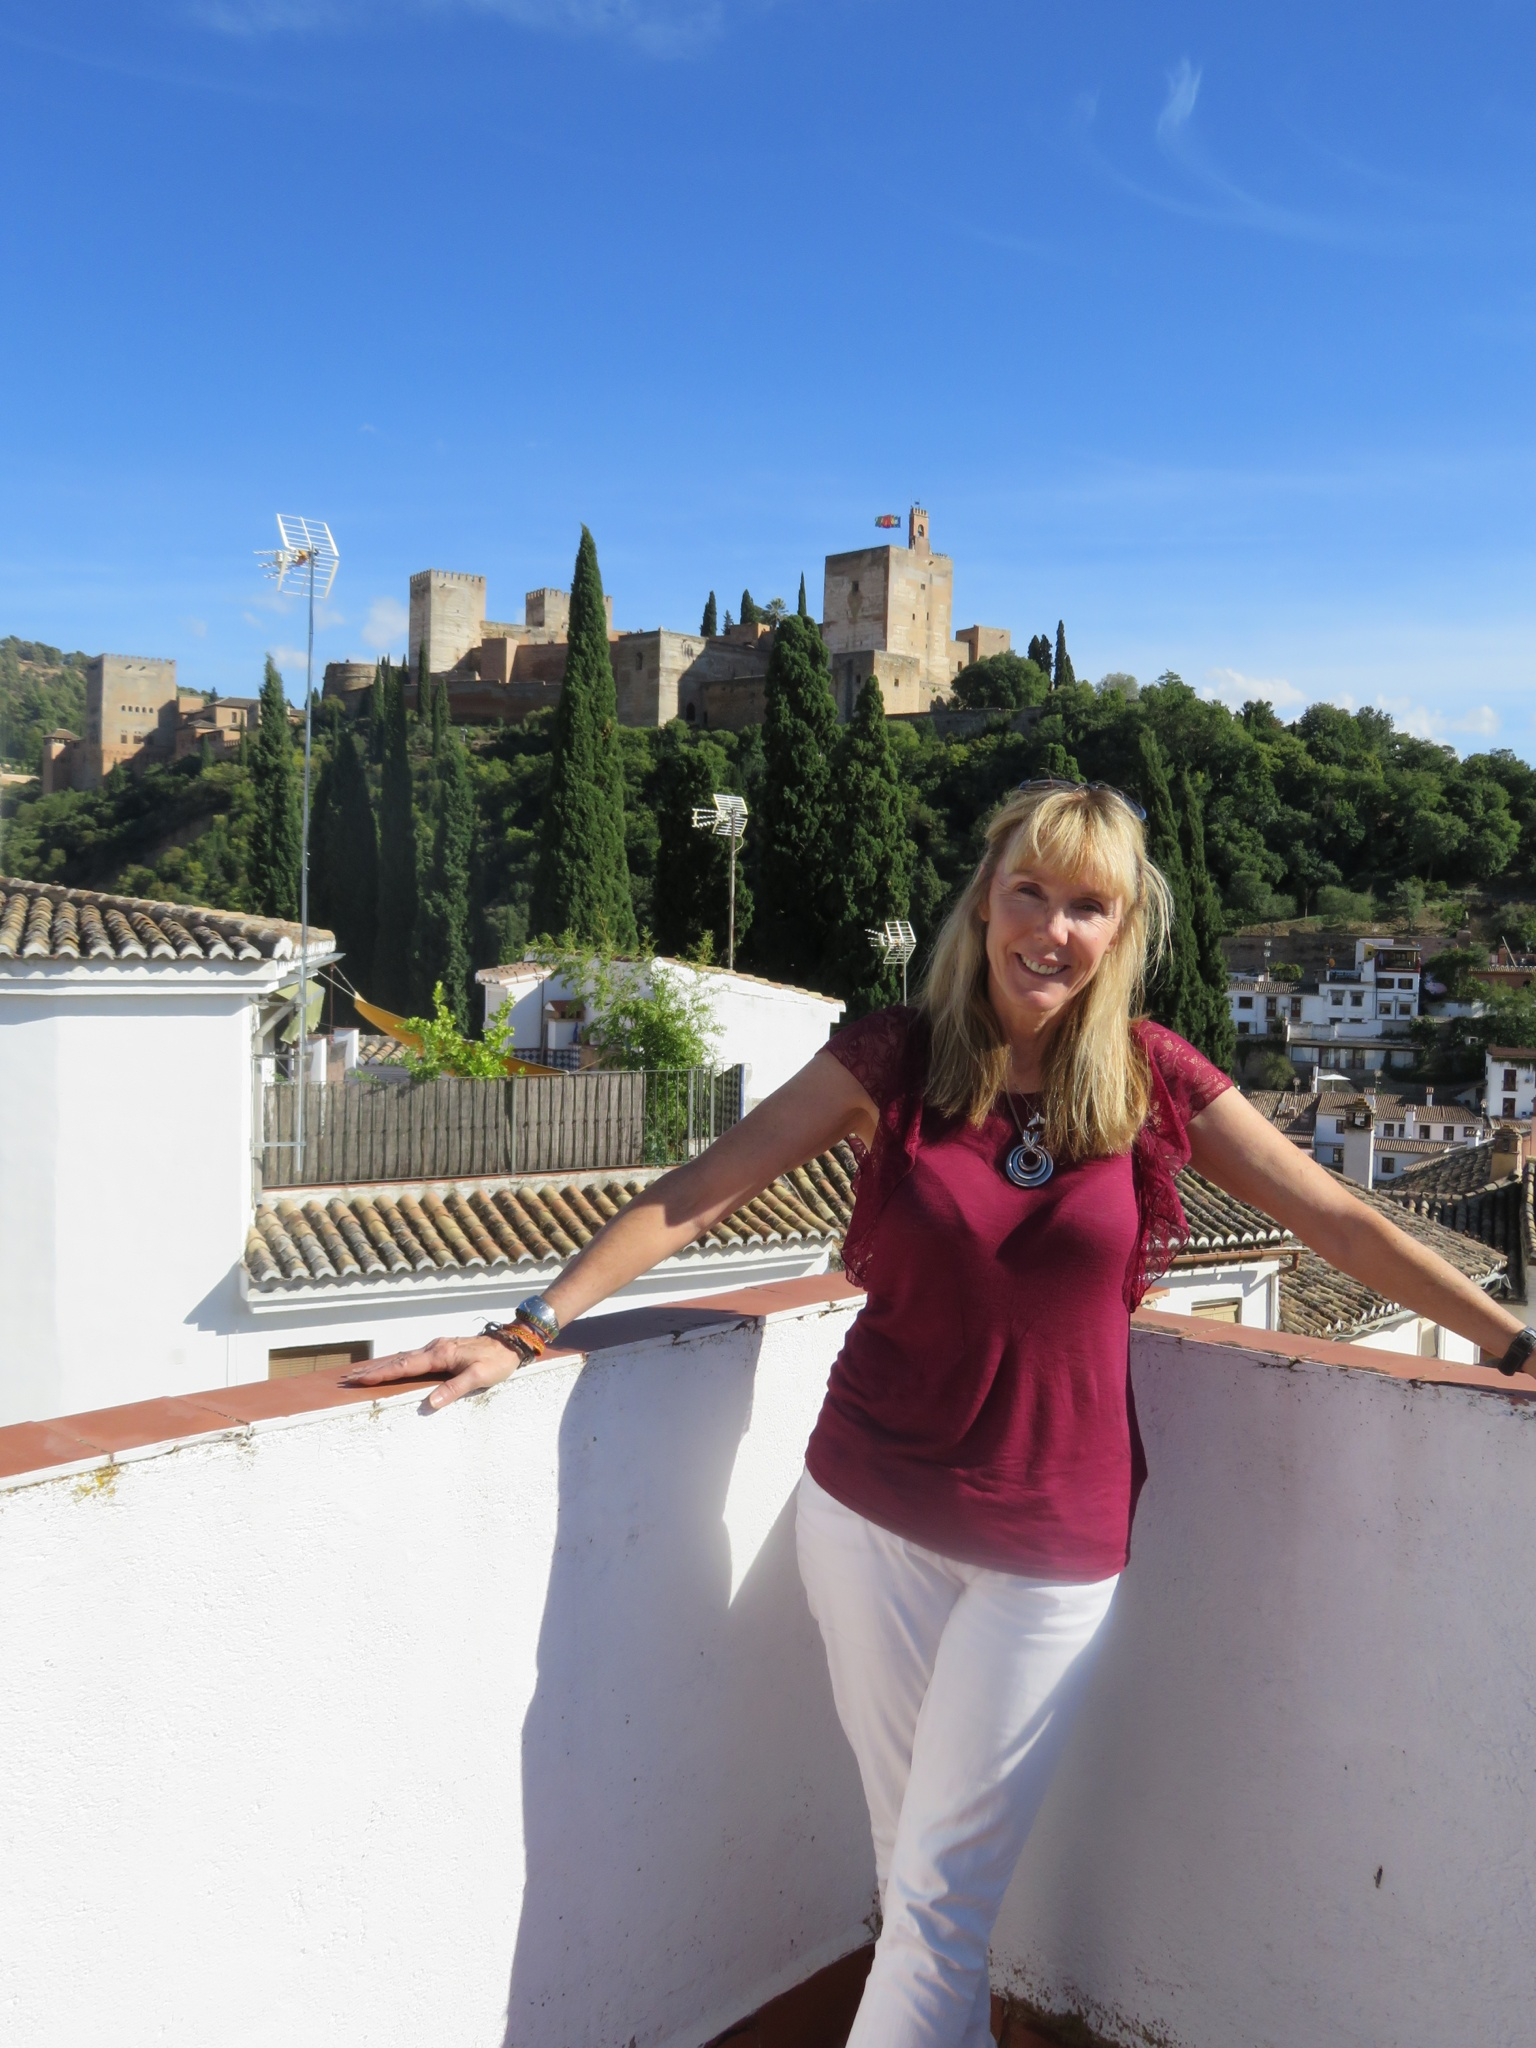 Terrace of the house with the Moorish Alhambra fortress and palace in the background.